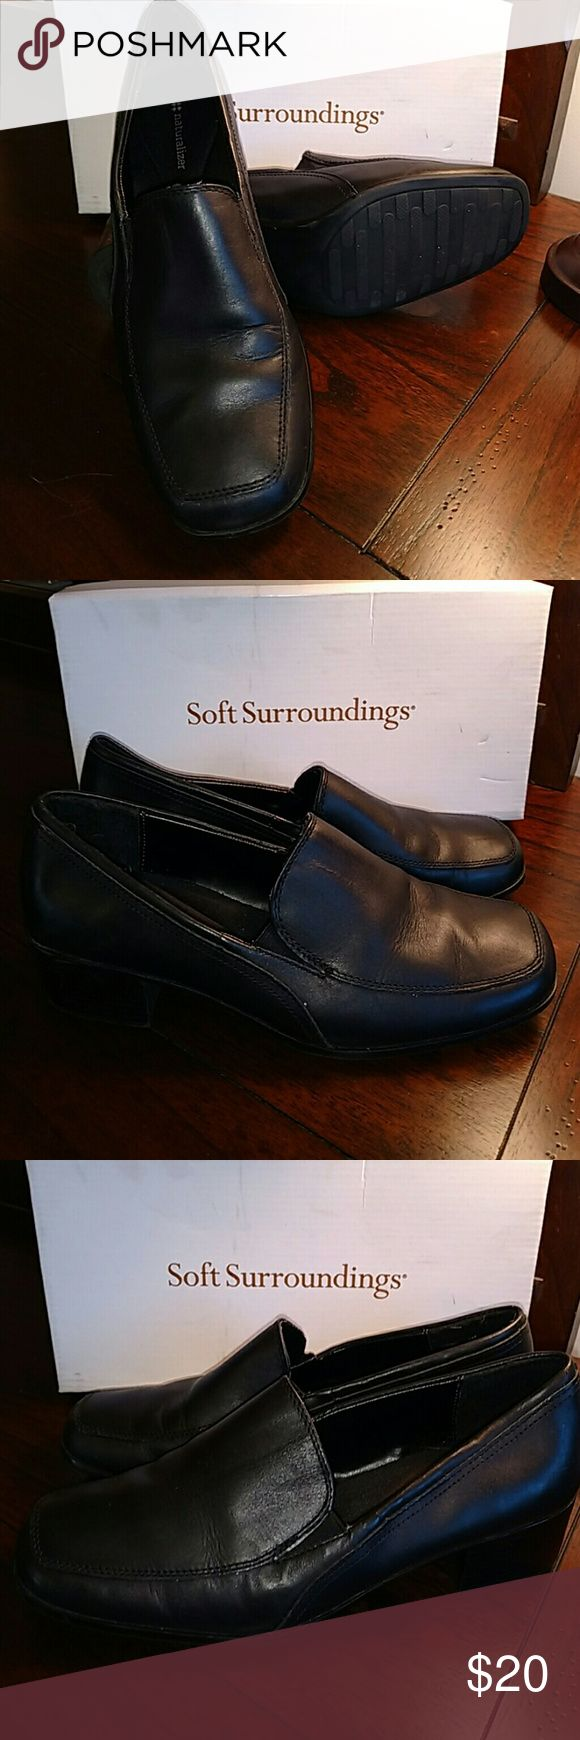 Naturalizer shoes These are like new Naturalizer shoes in excellent condition. They are a size 8M Naturalizer Shoes Flats & Loafers